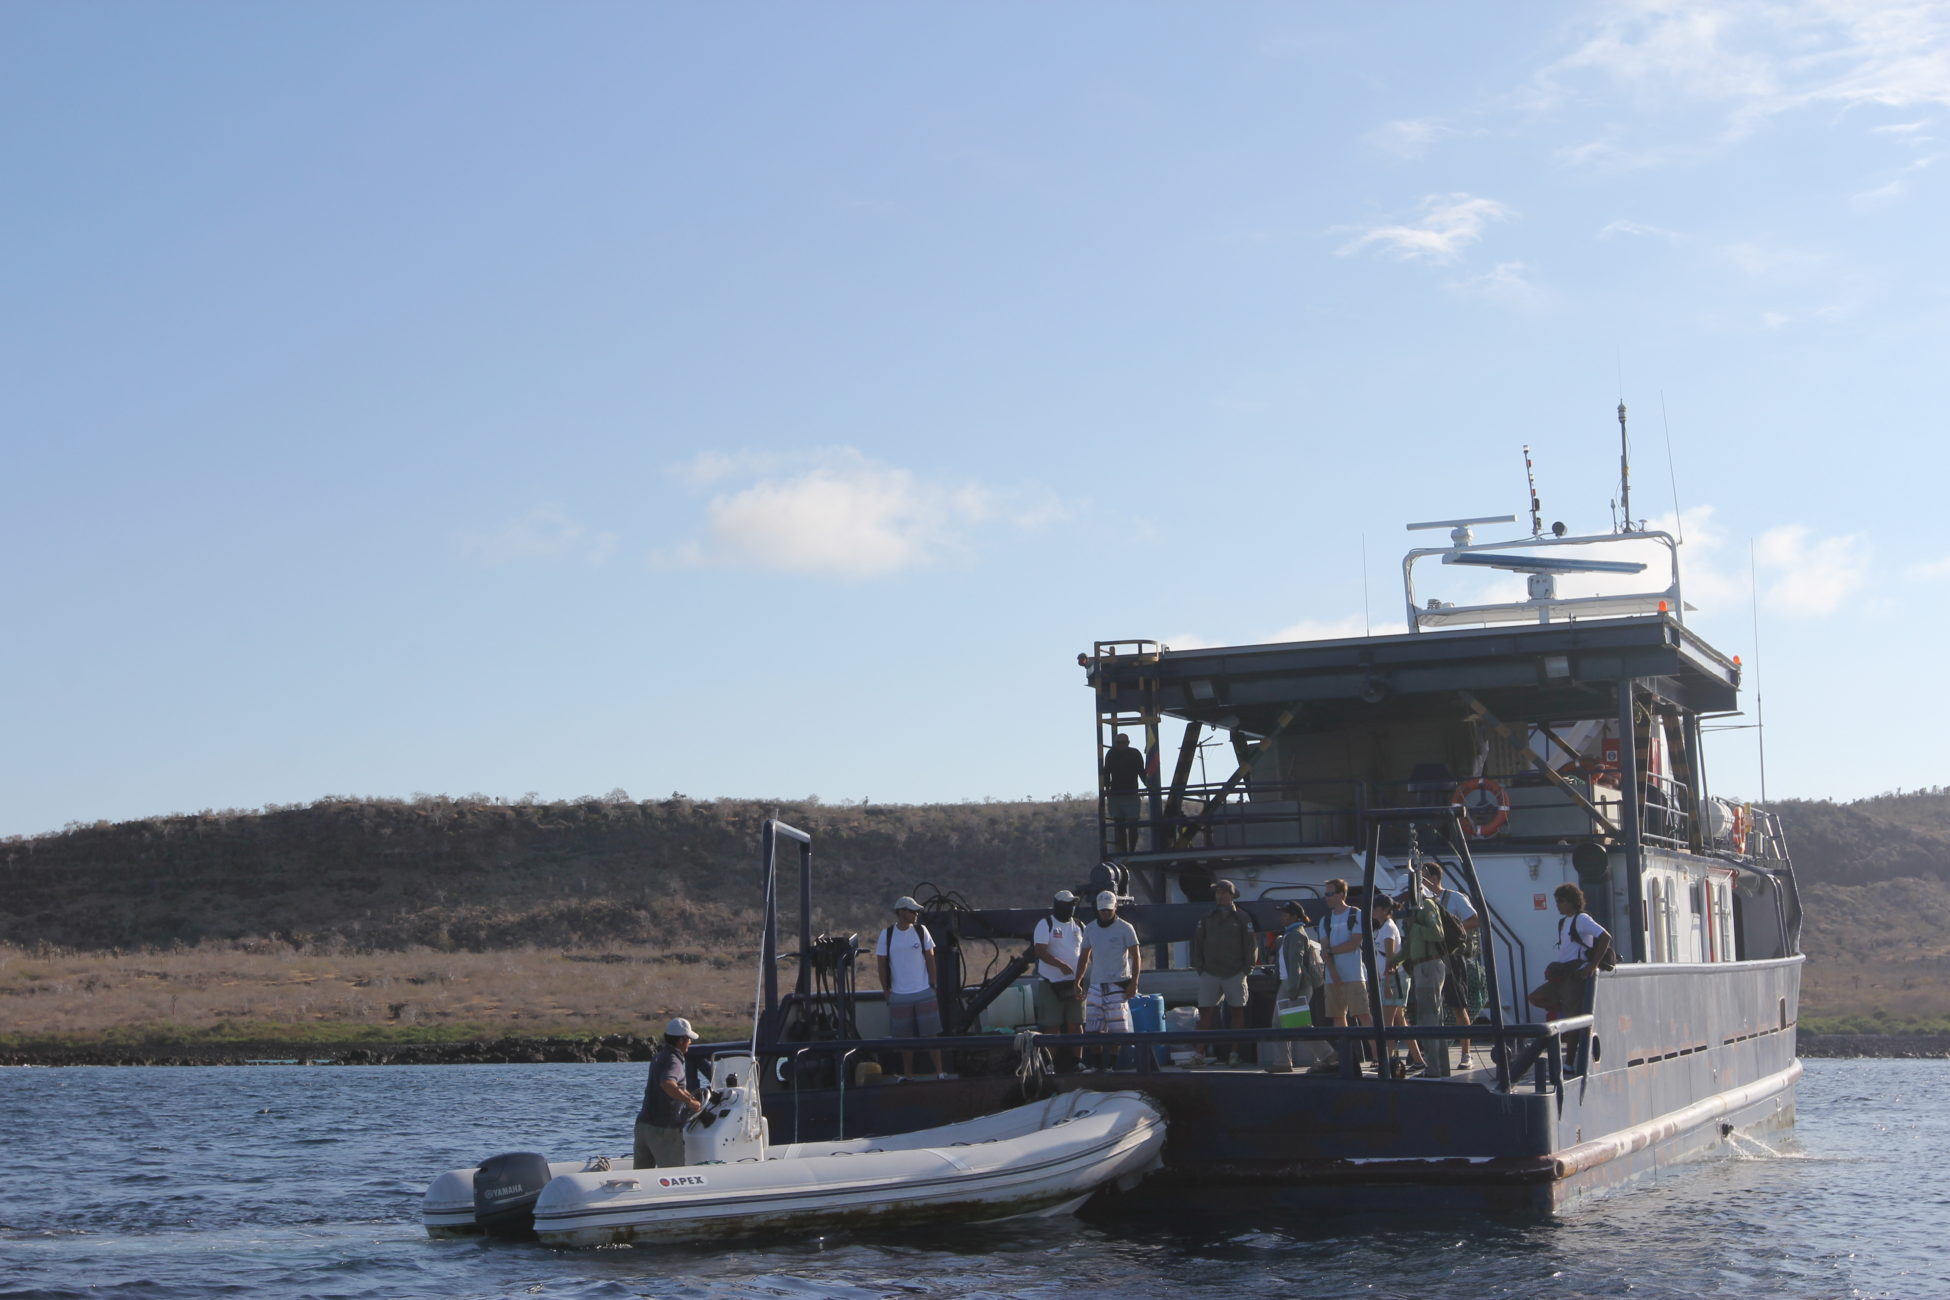 Picture of the Sierra Negra, a zodiac boat.